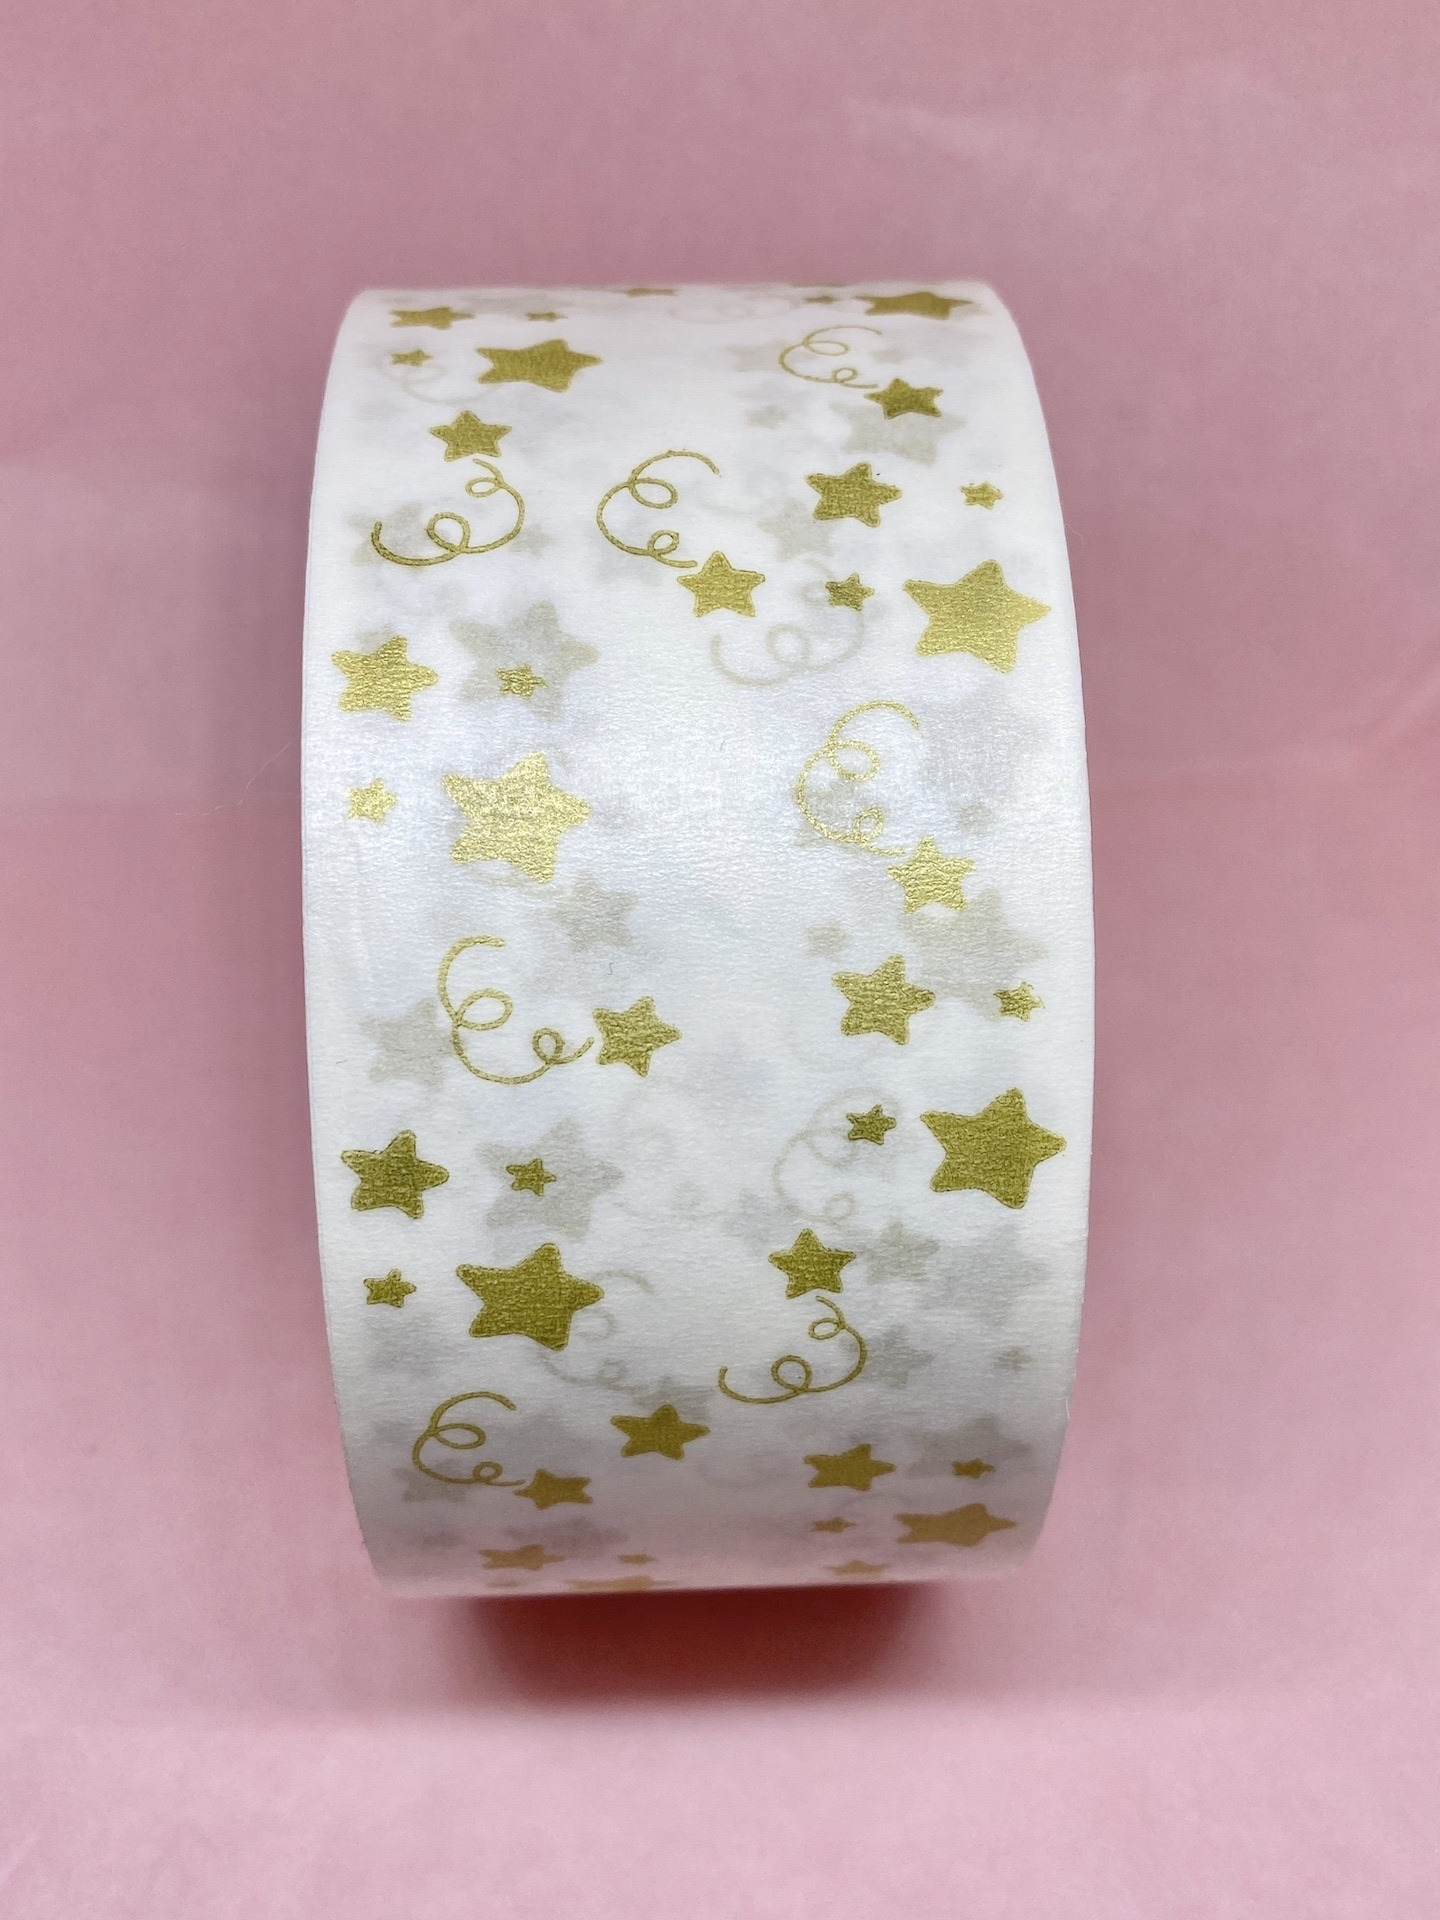 Metallic gold eco friendly paper tape, paper packing tape, kraft paper tape, recyclable paper tape, cute packing tape, printed packing tape Kind Shop 2